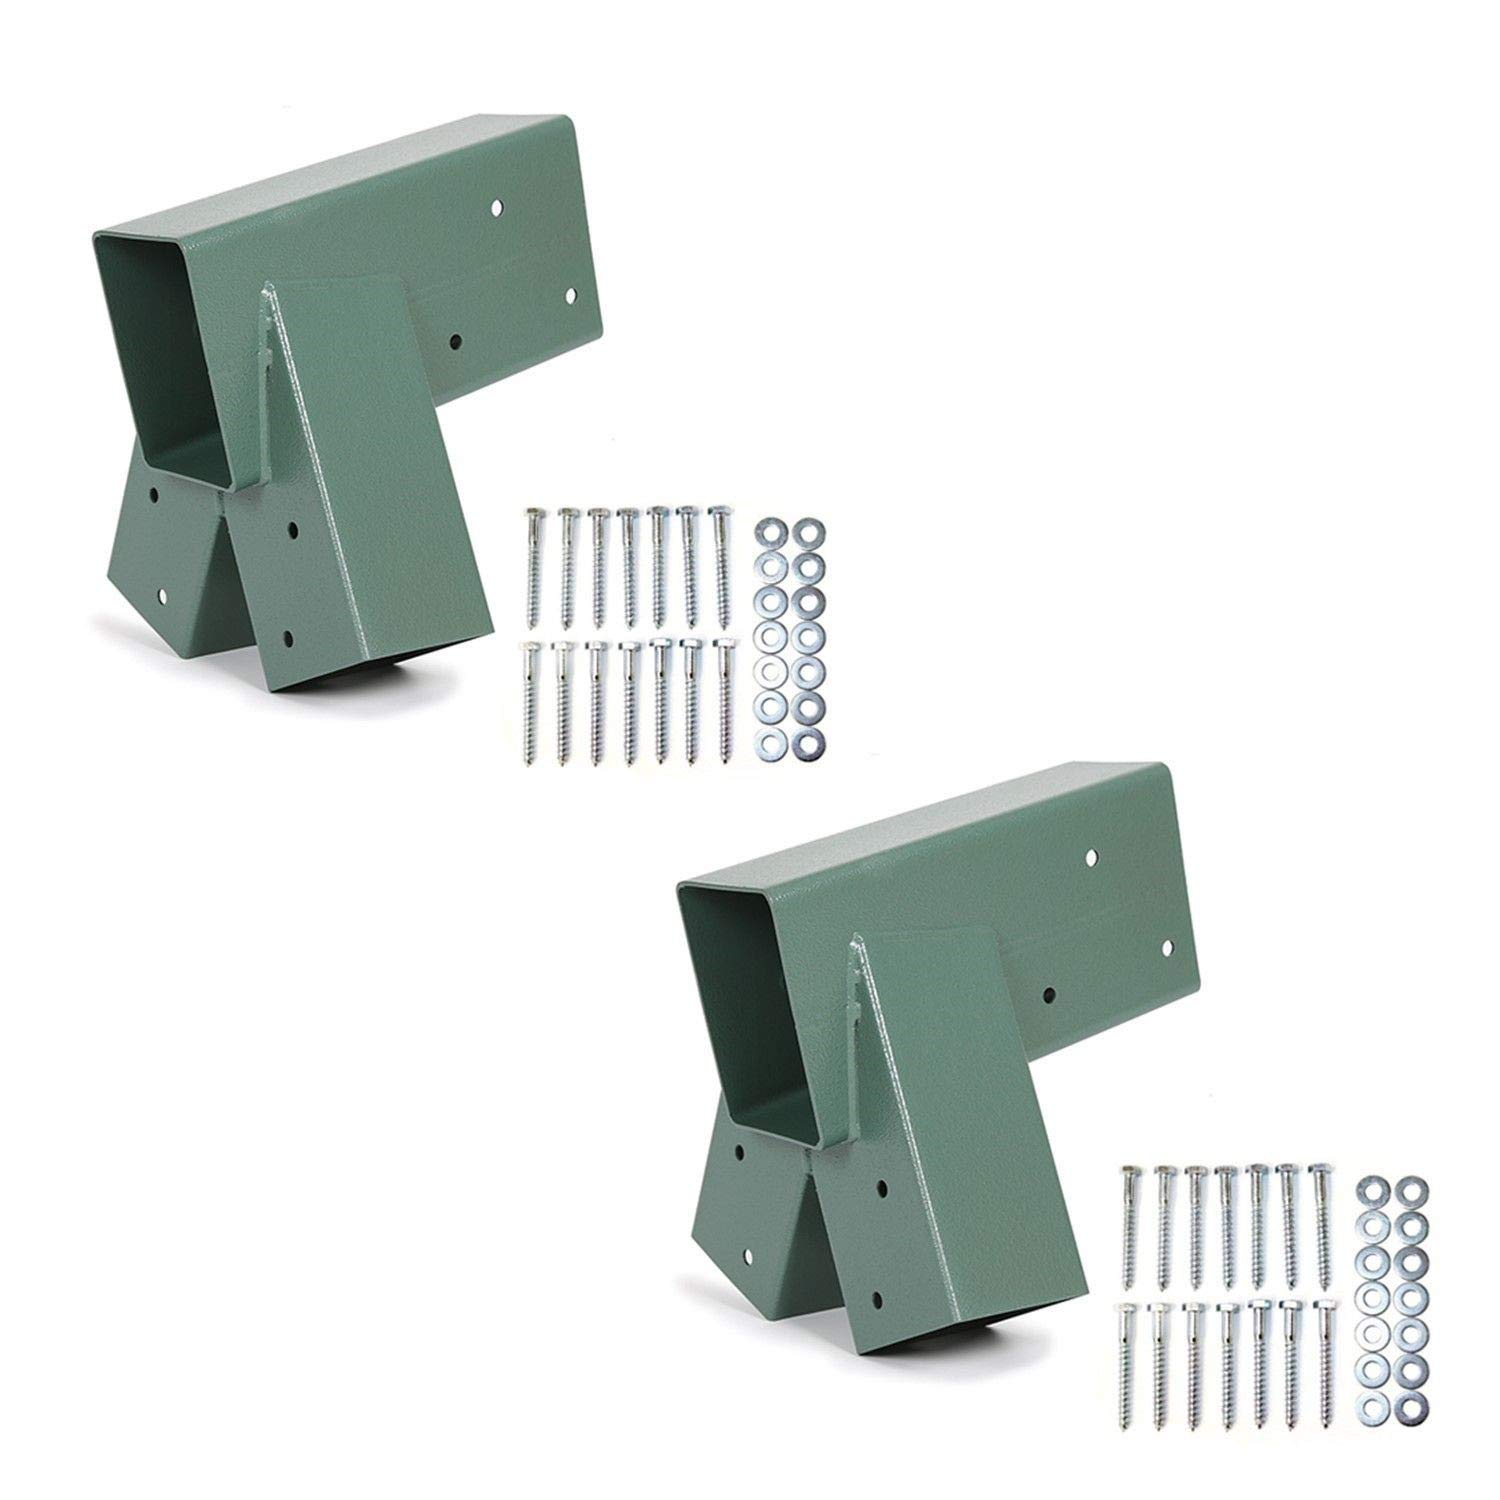 ECOTRIC Easy Install 1-2-3 Heavy Duty Steel A-Frame Swing Set Mounting Bracket Green, All Hardware Include (2 Brackets)